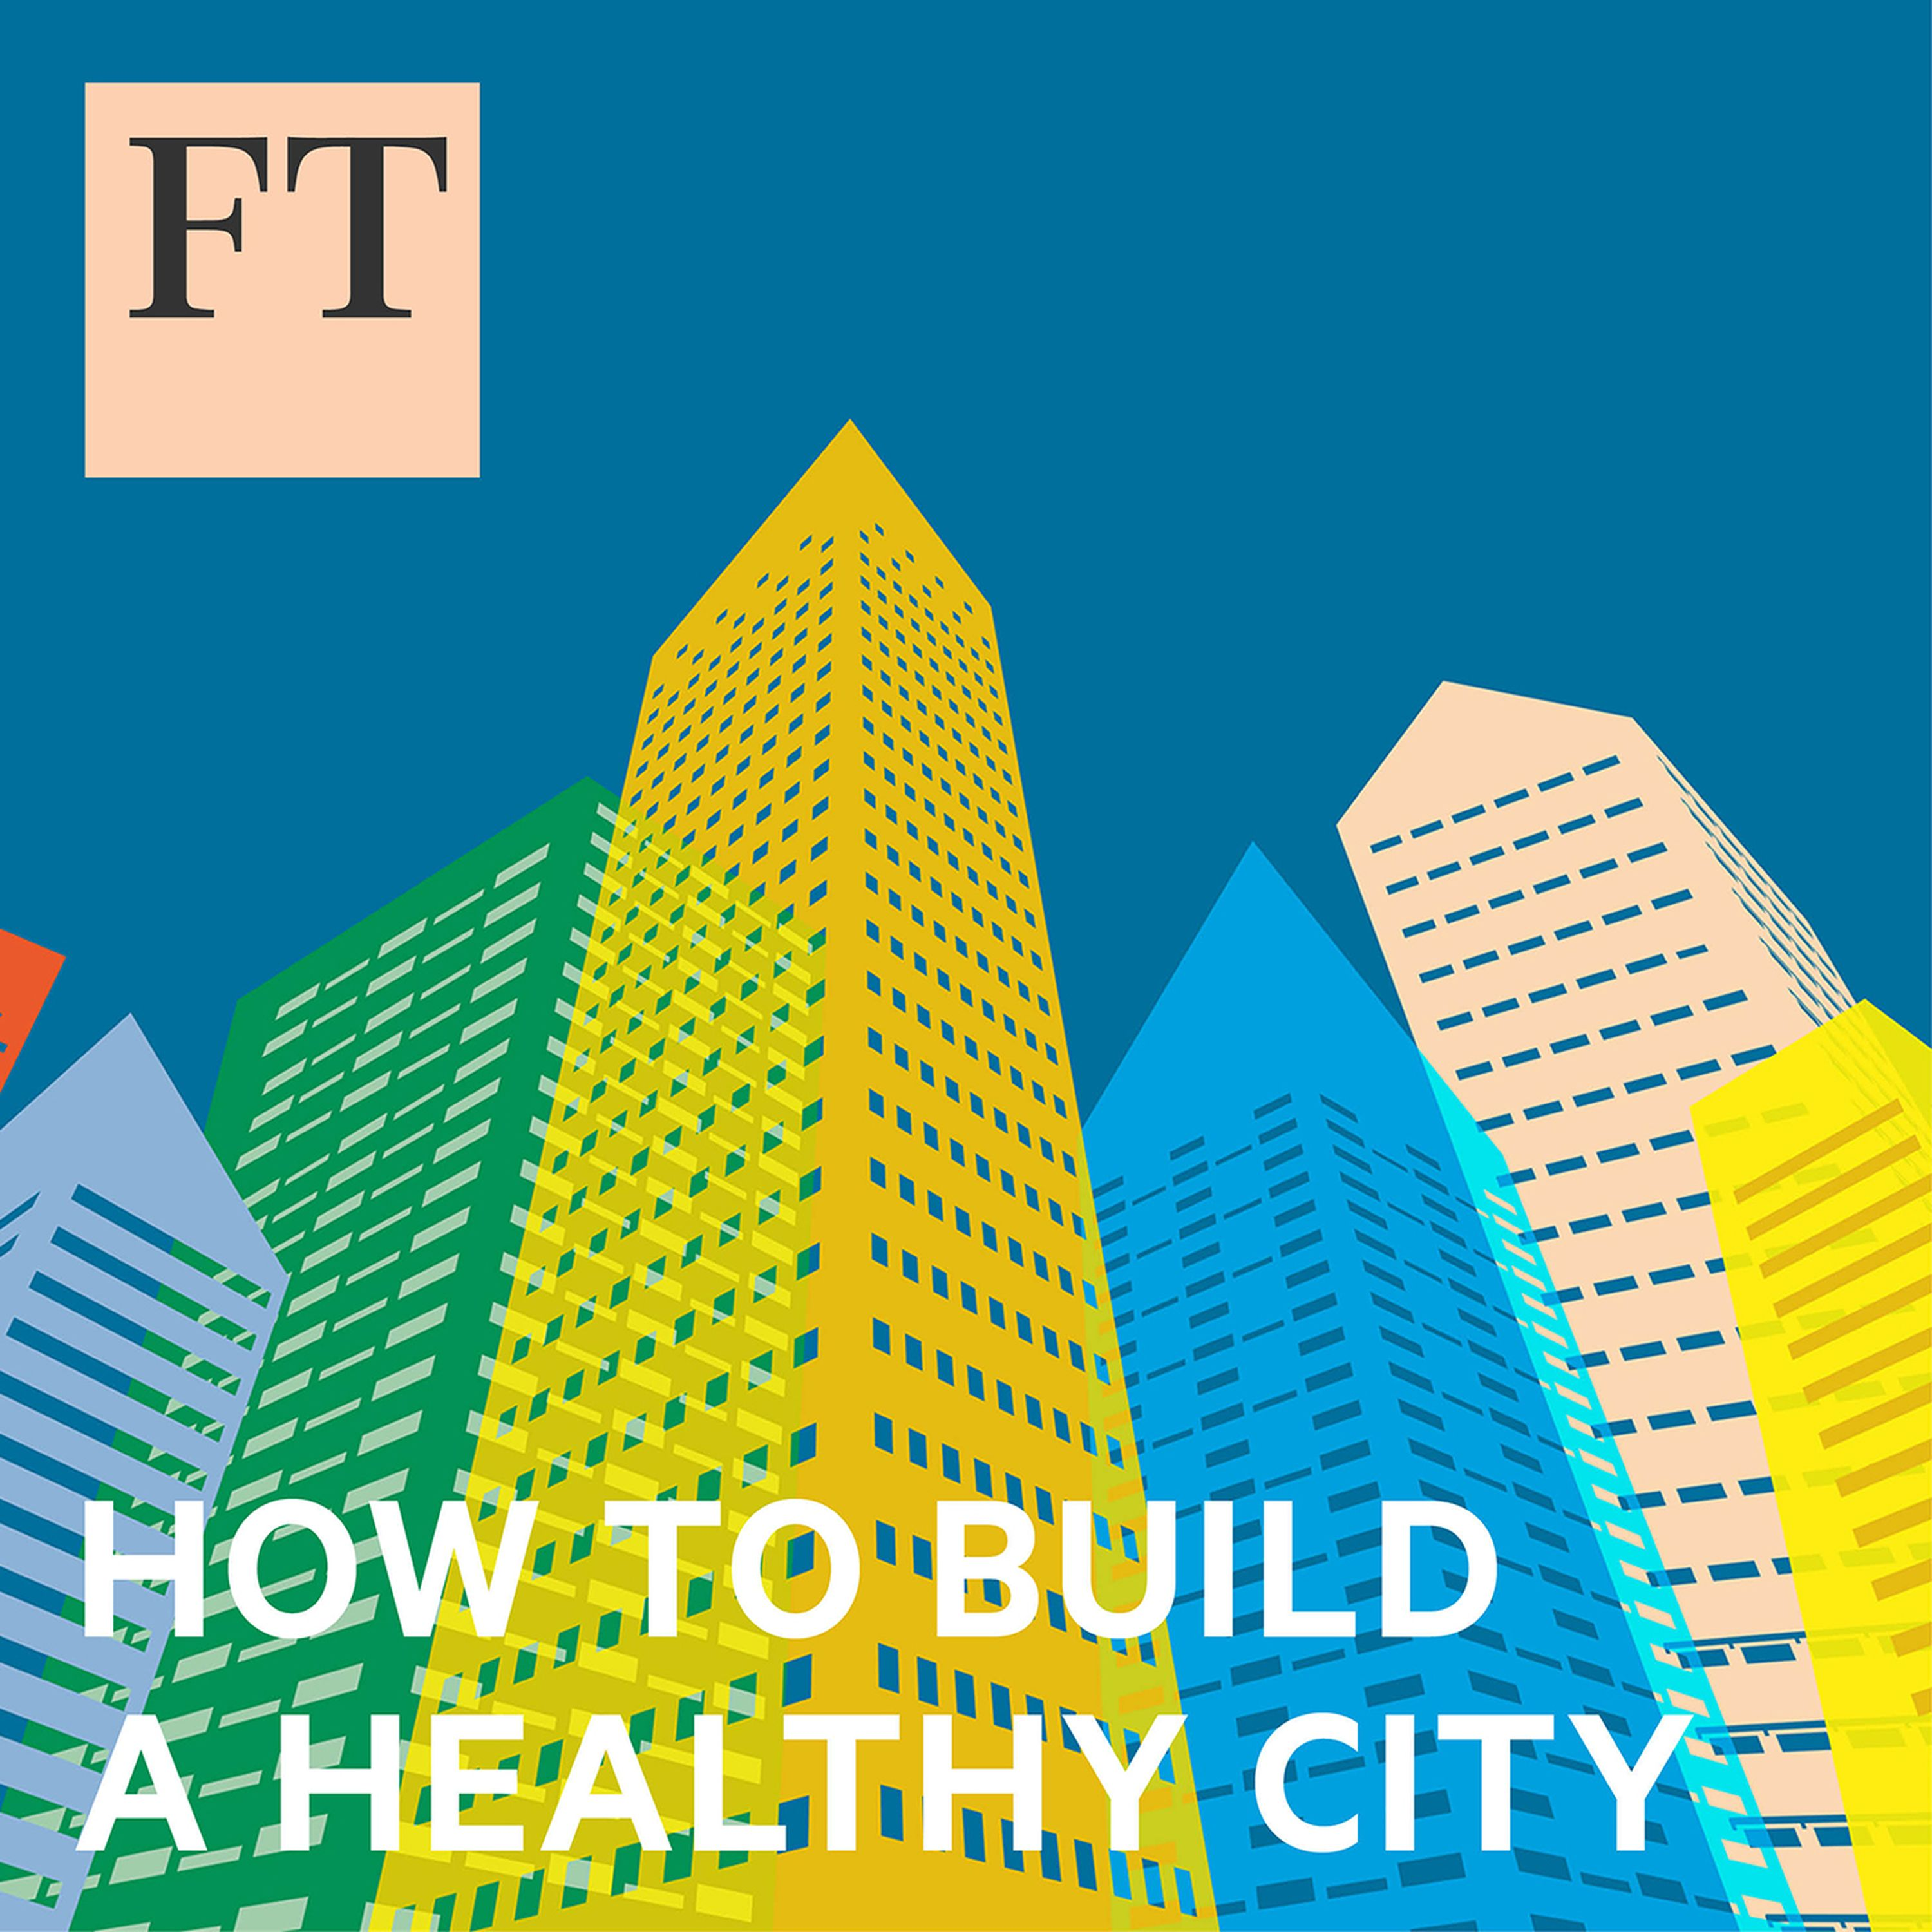 Introducing How to Build a Healthy City